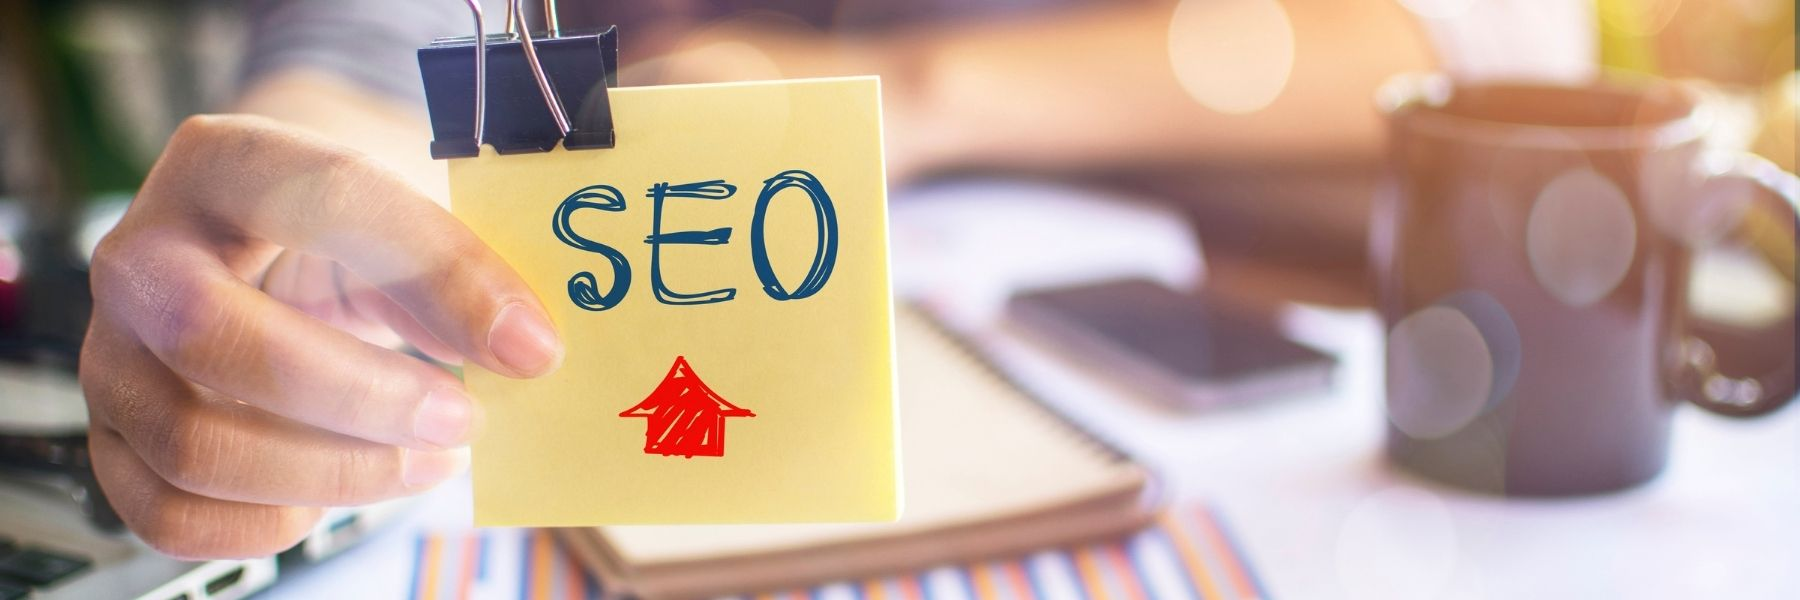 """Sticky note reading """"SEO"""" with arrow pointing up"""